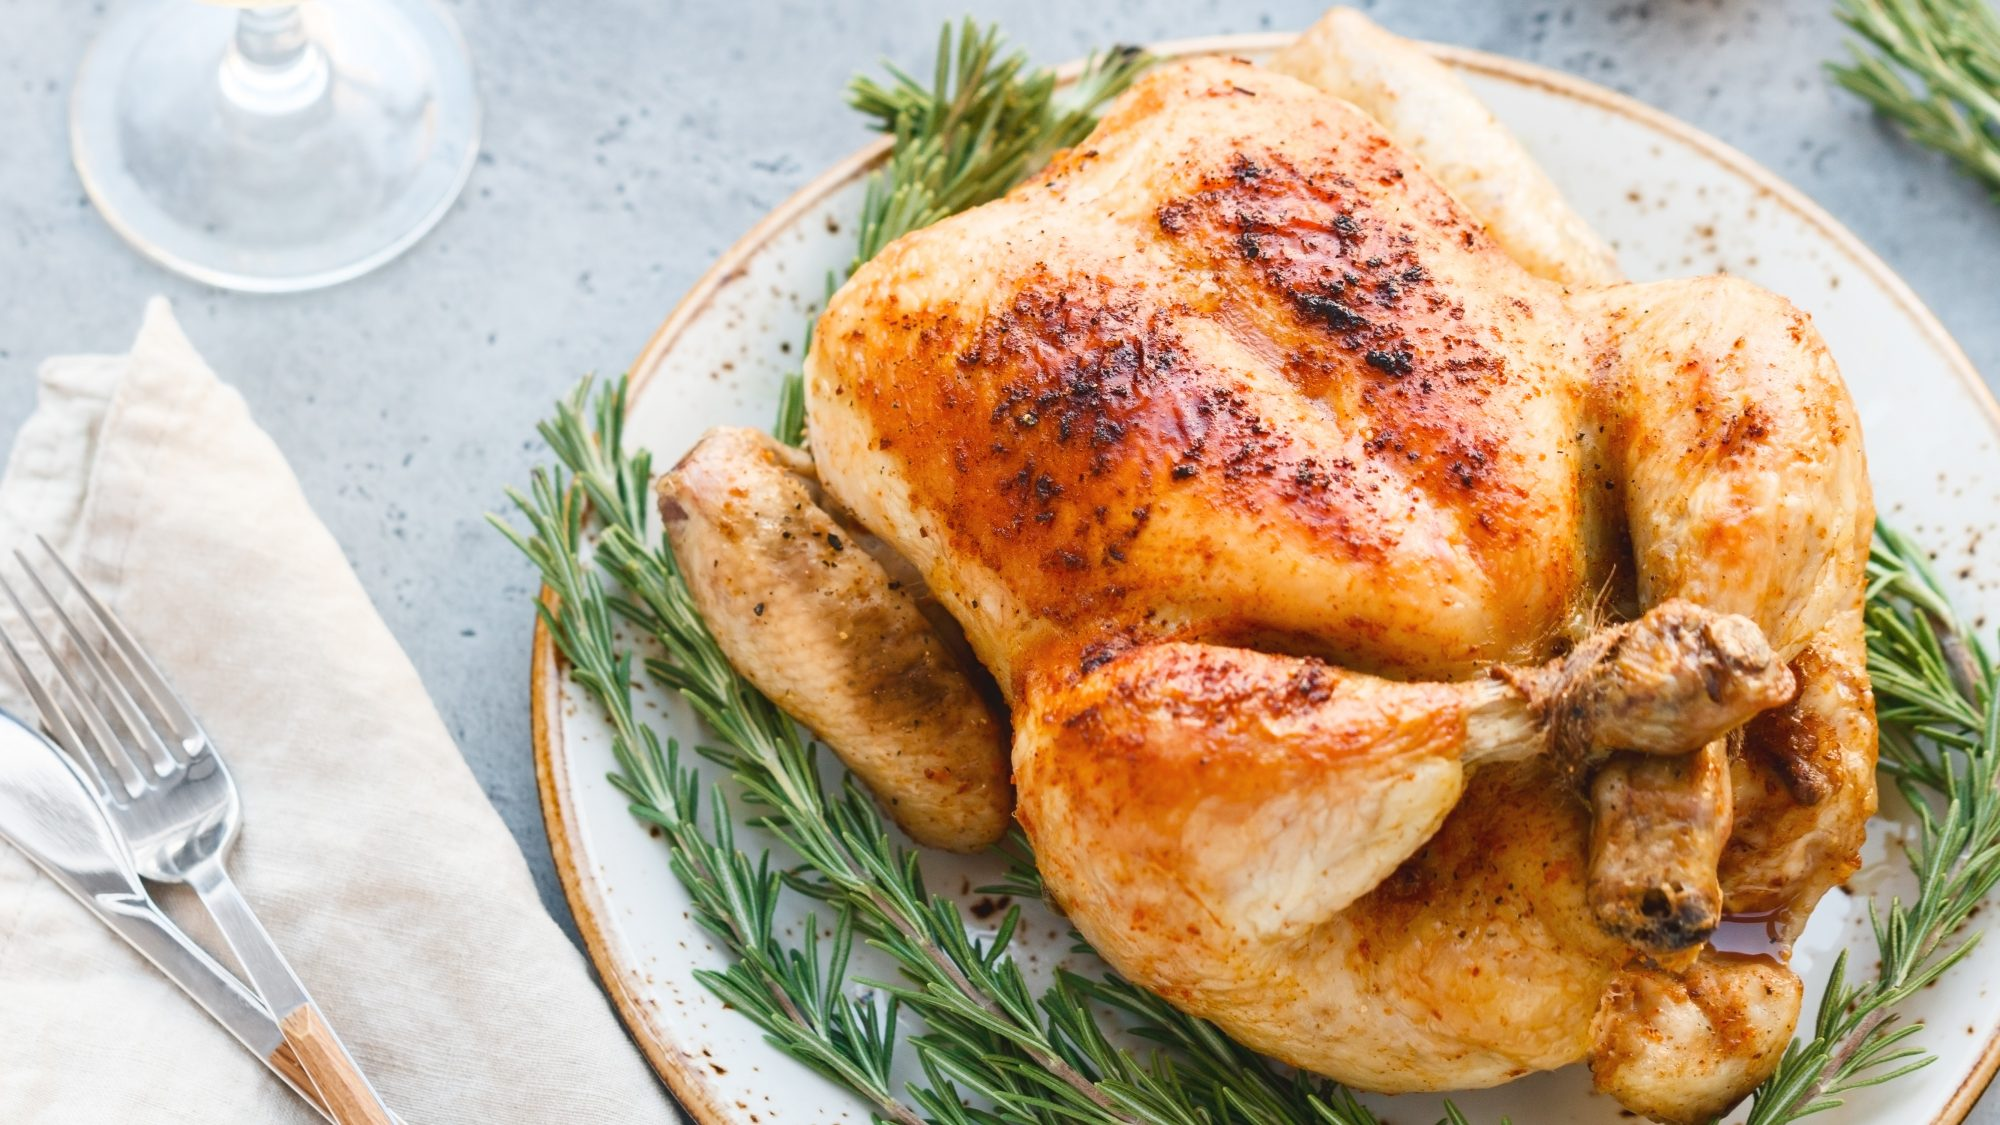 roasted chicken cooked in a convection oven